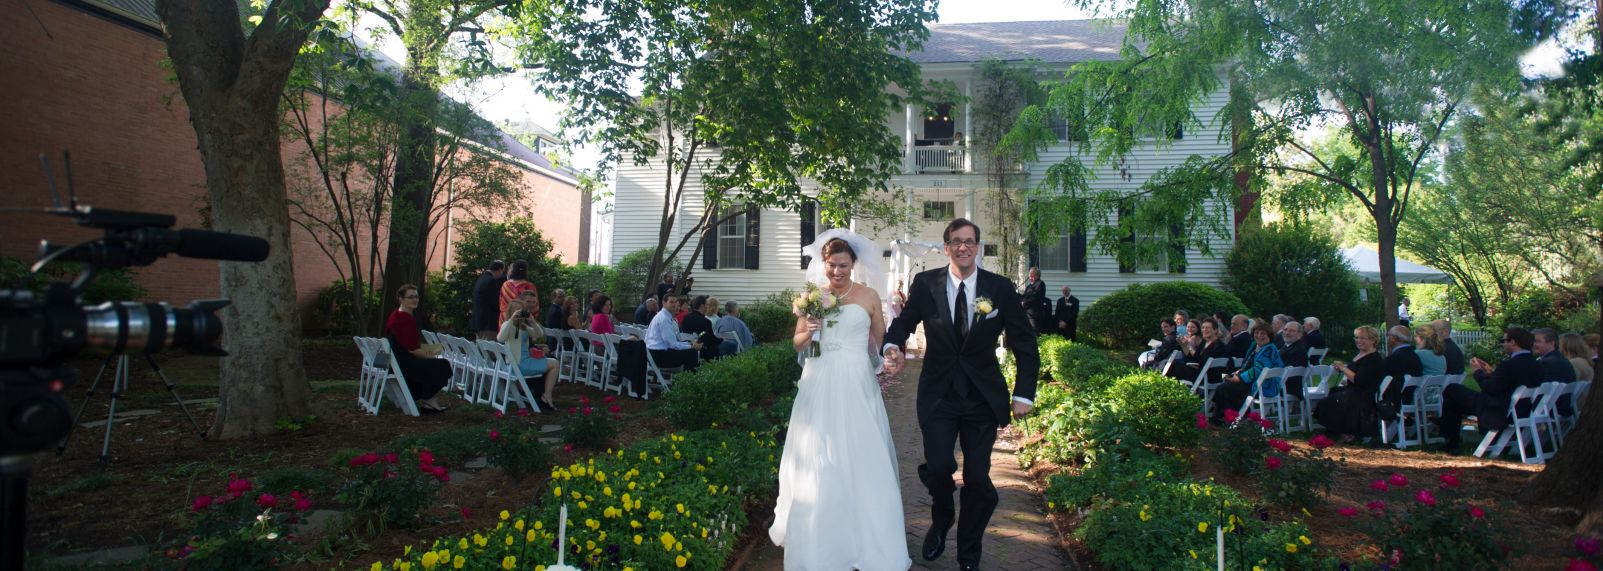 Wedding Venues In Raleigh Nc